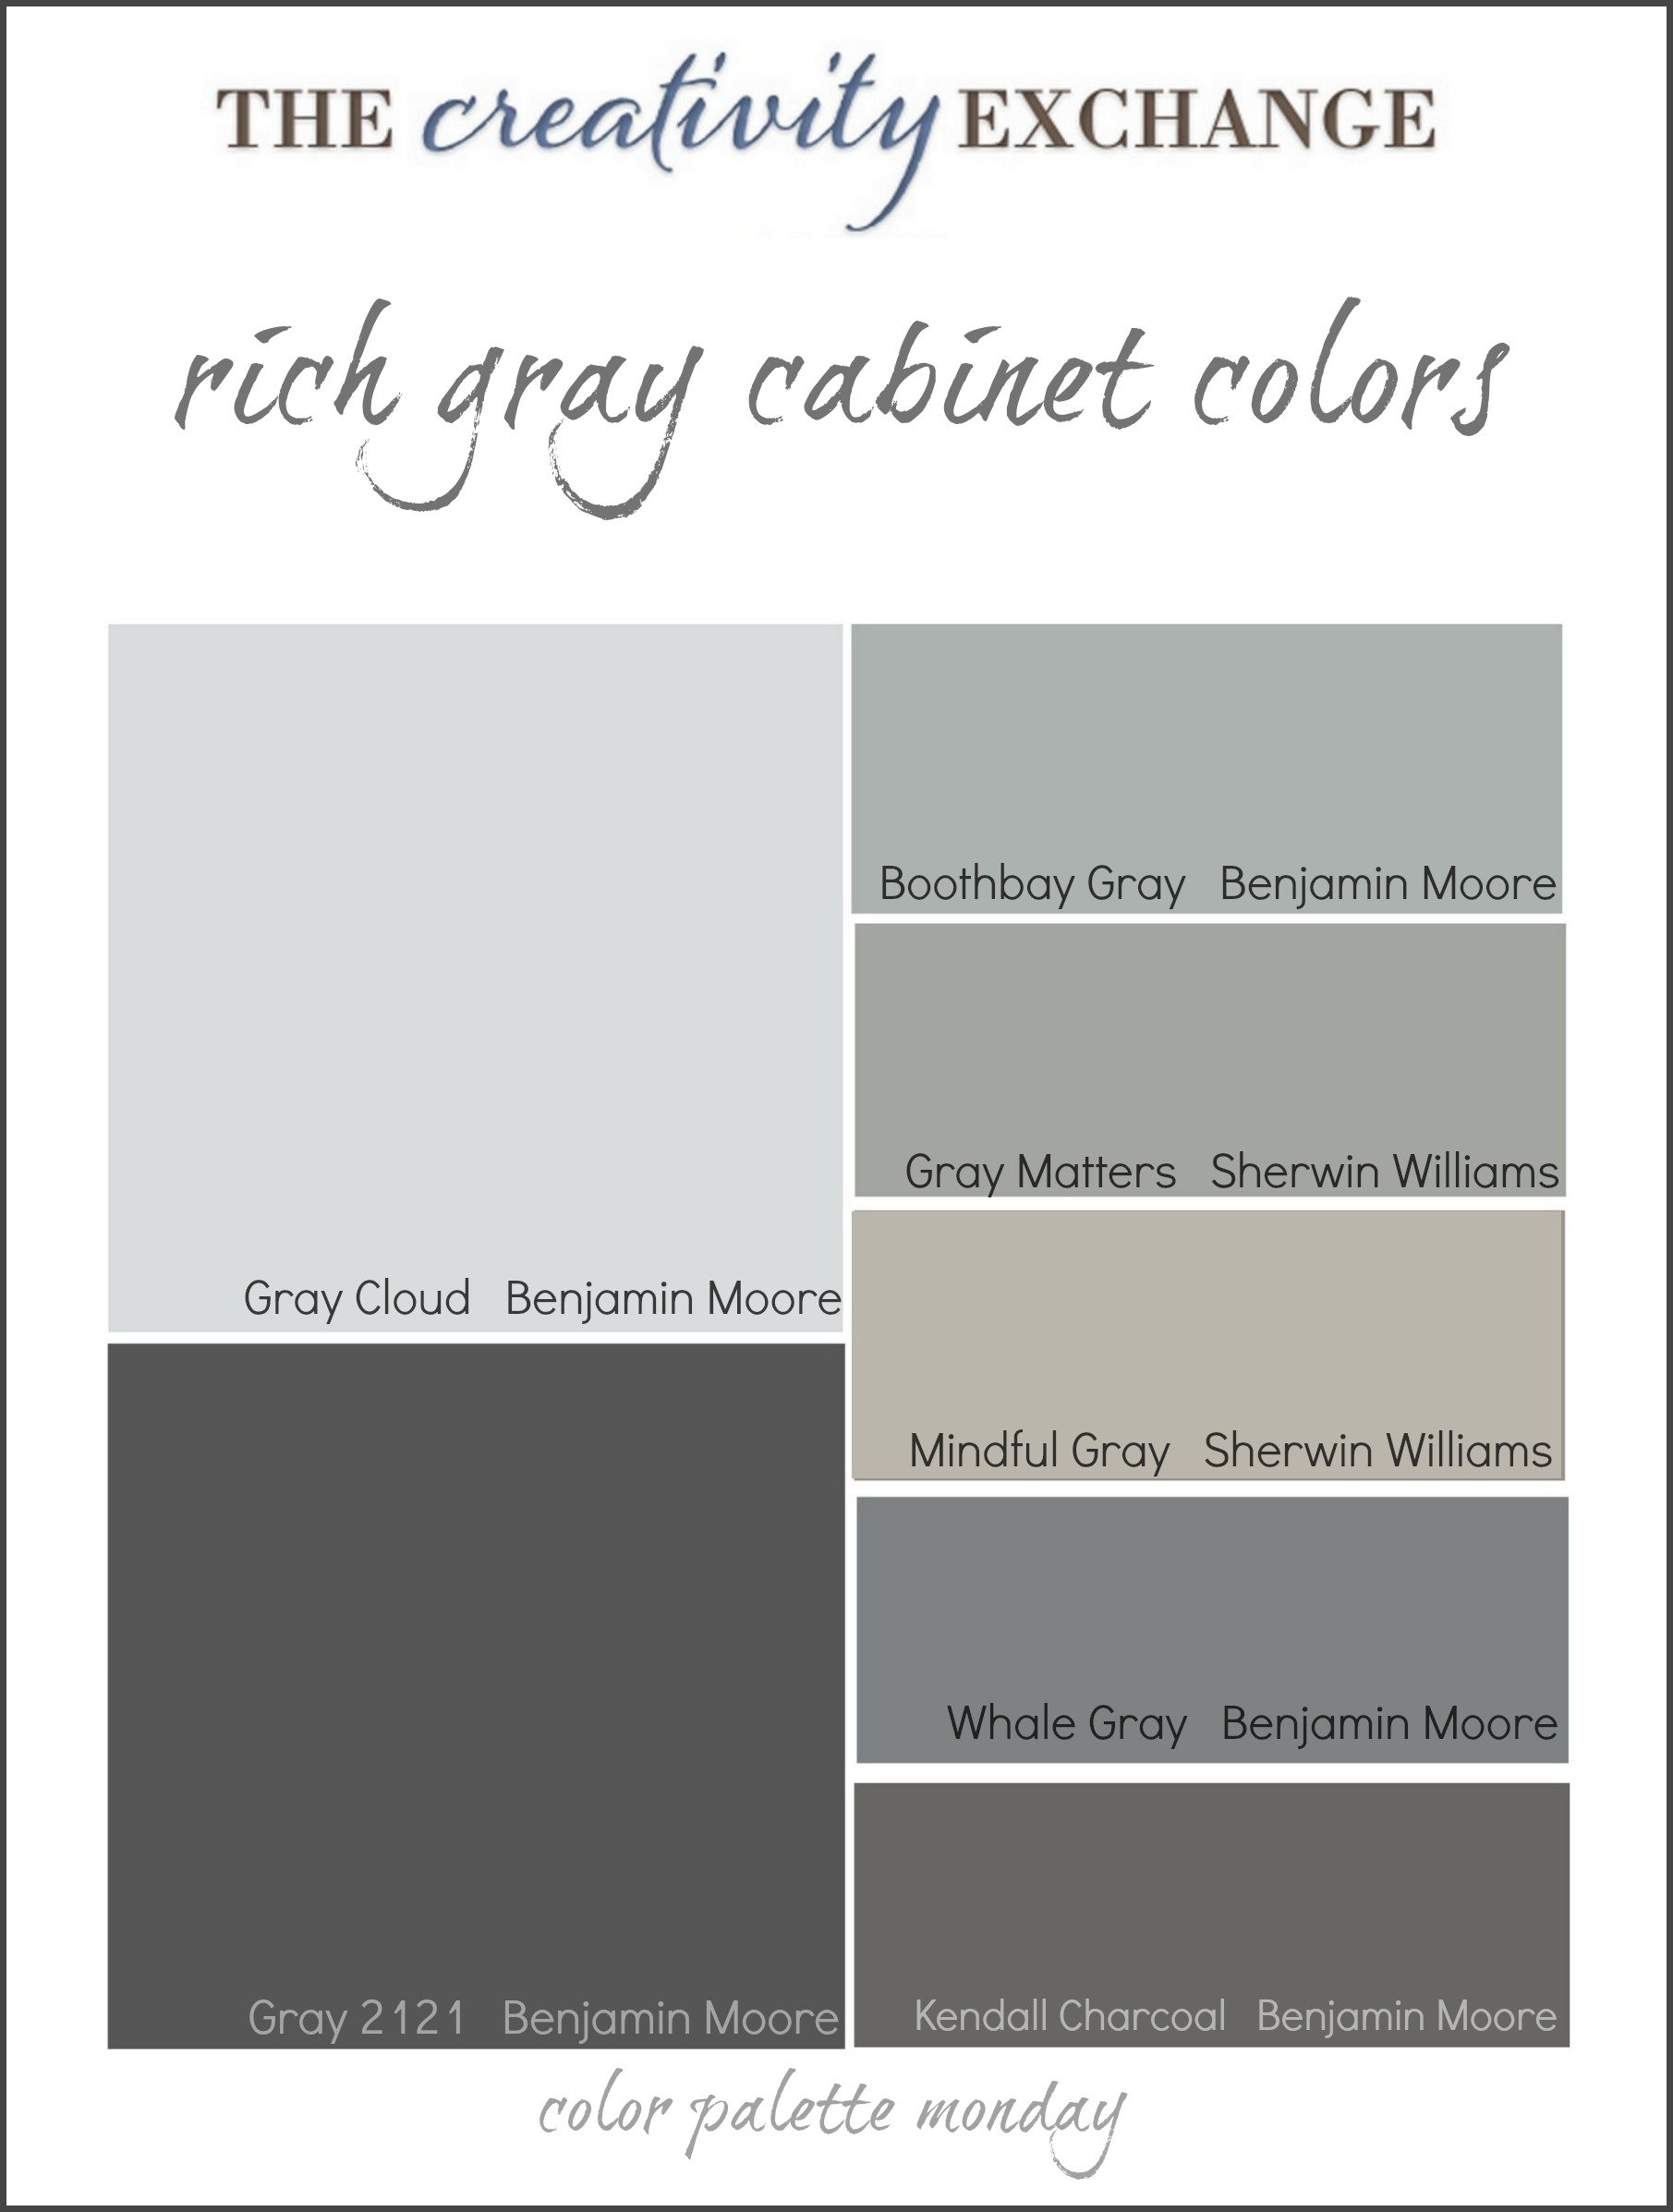 Sherwin williams popular greys - Collection Of Some Of The Most Popular Gray Paint Colors Used For Painting Cabinets Vanities